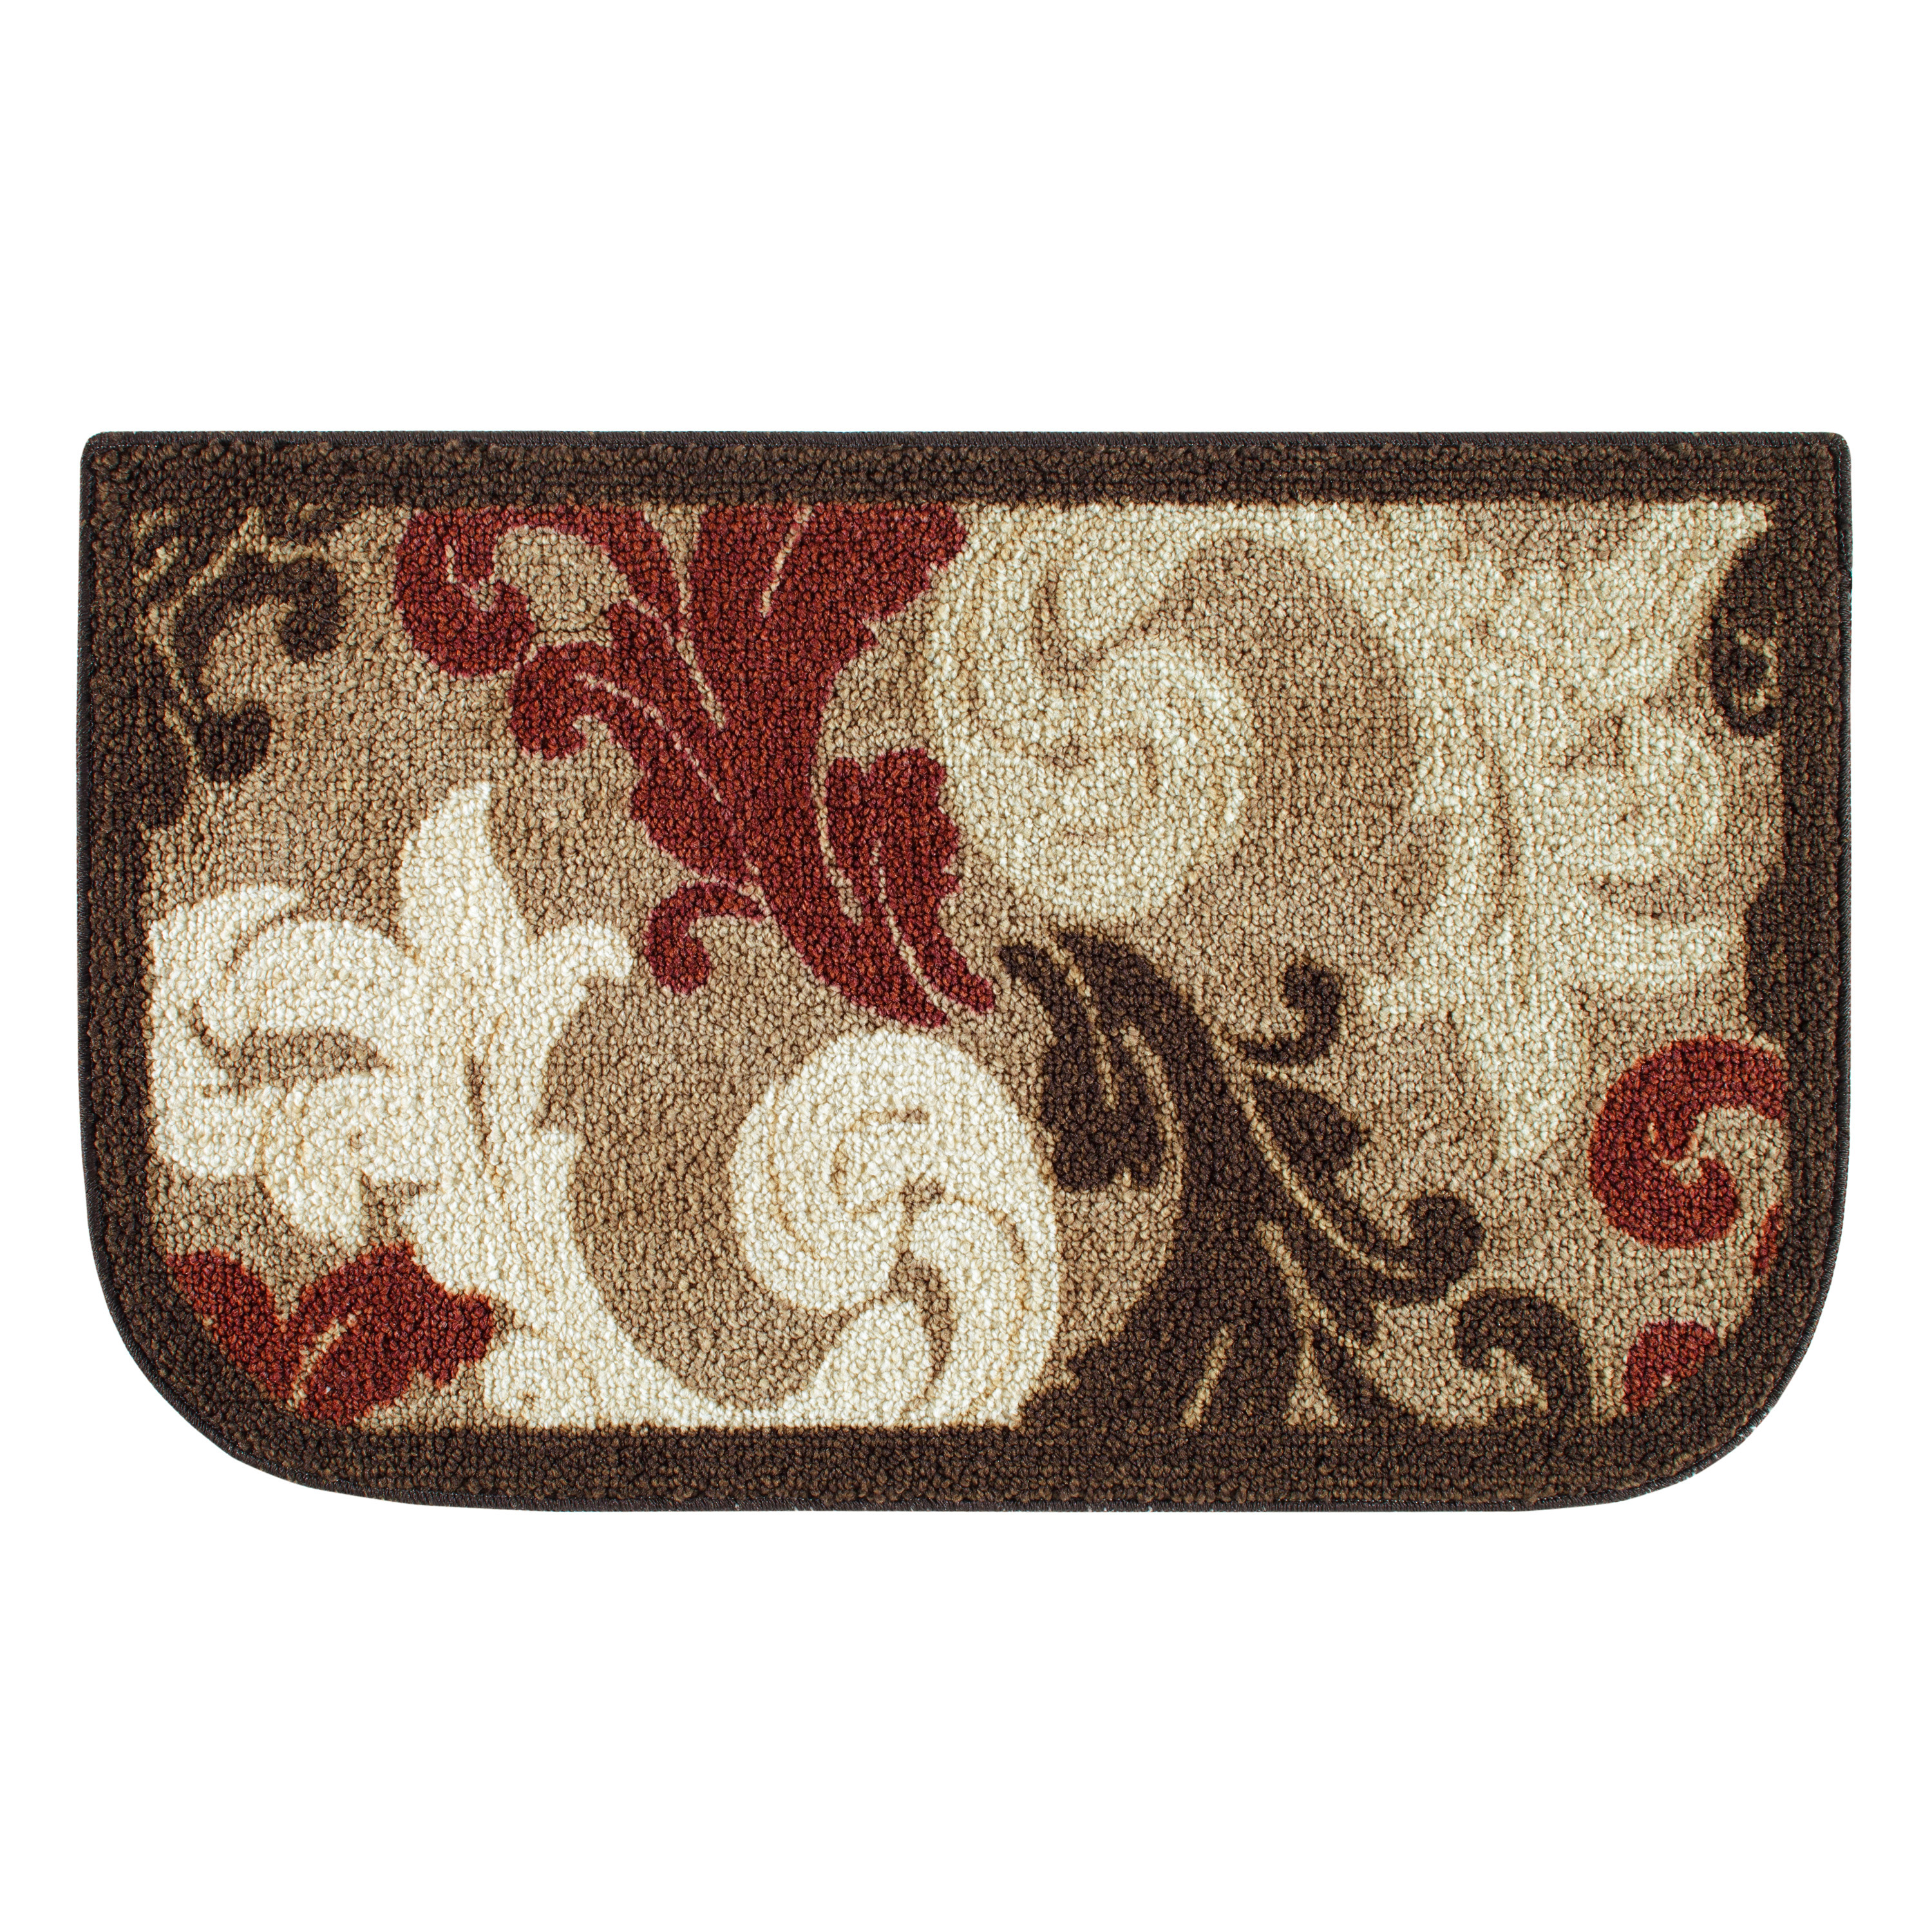 Better Homes And Gardens Kitchen Rugs - Best Home Interior •